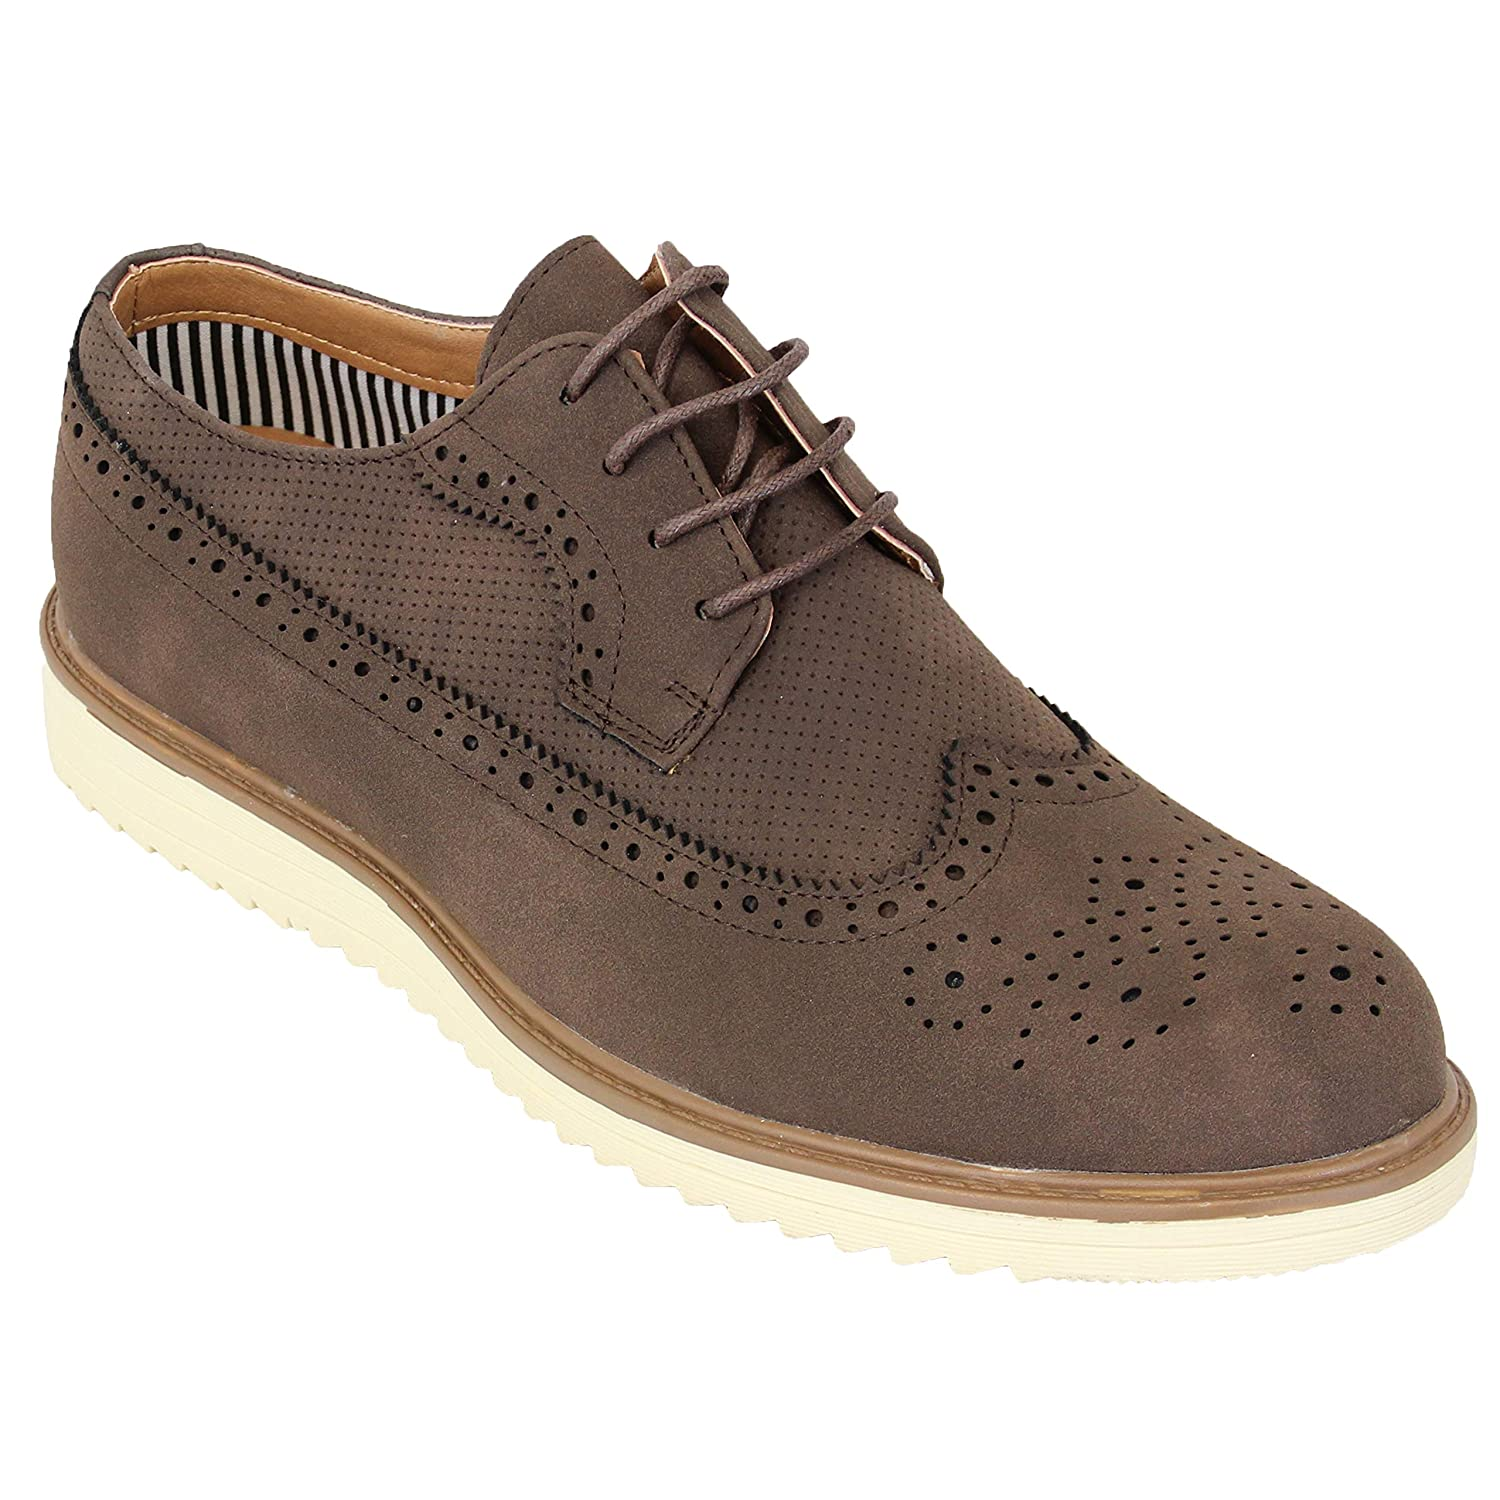 Belide Mens Brogue Boots Leather Suede Look Lace Up Formal